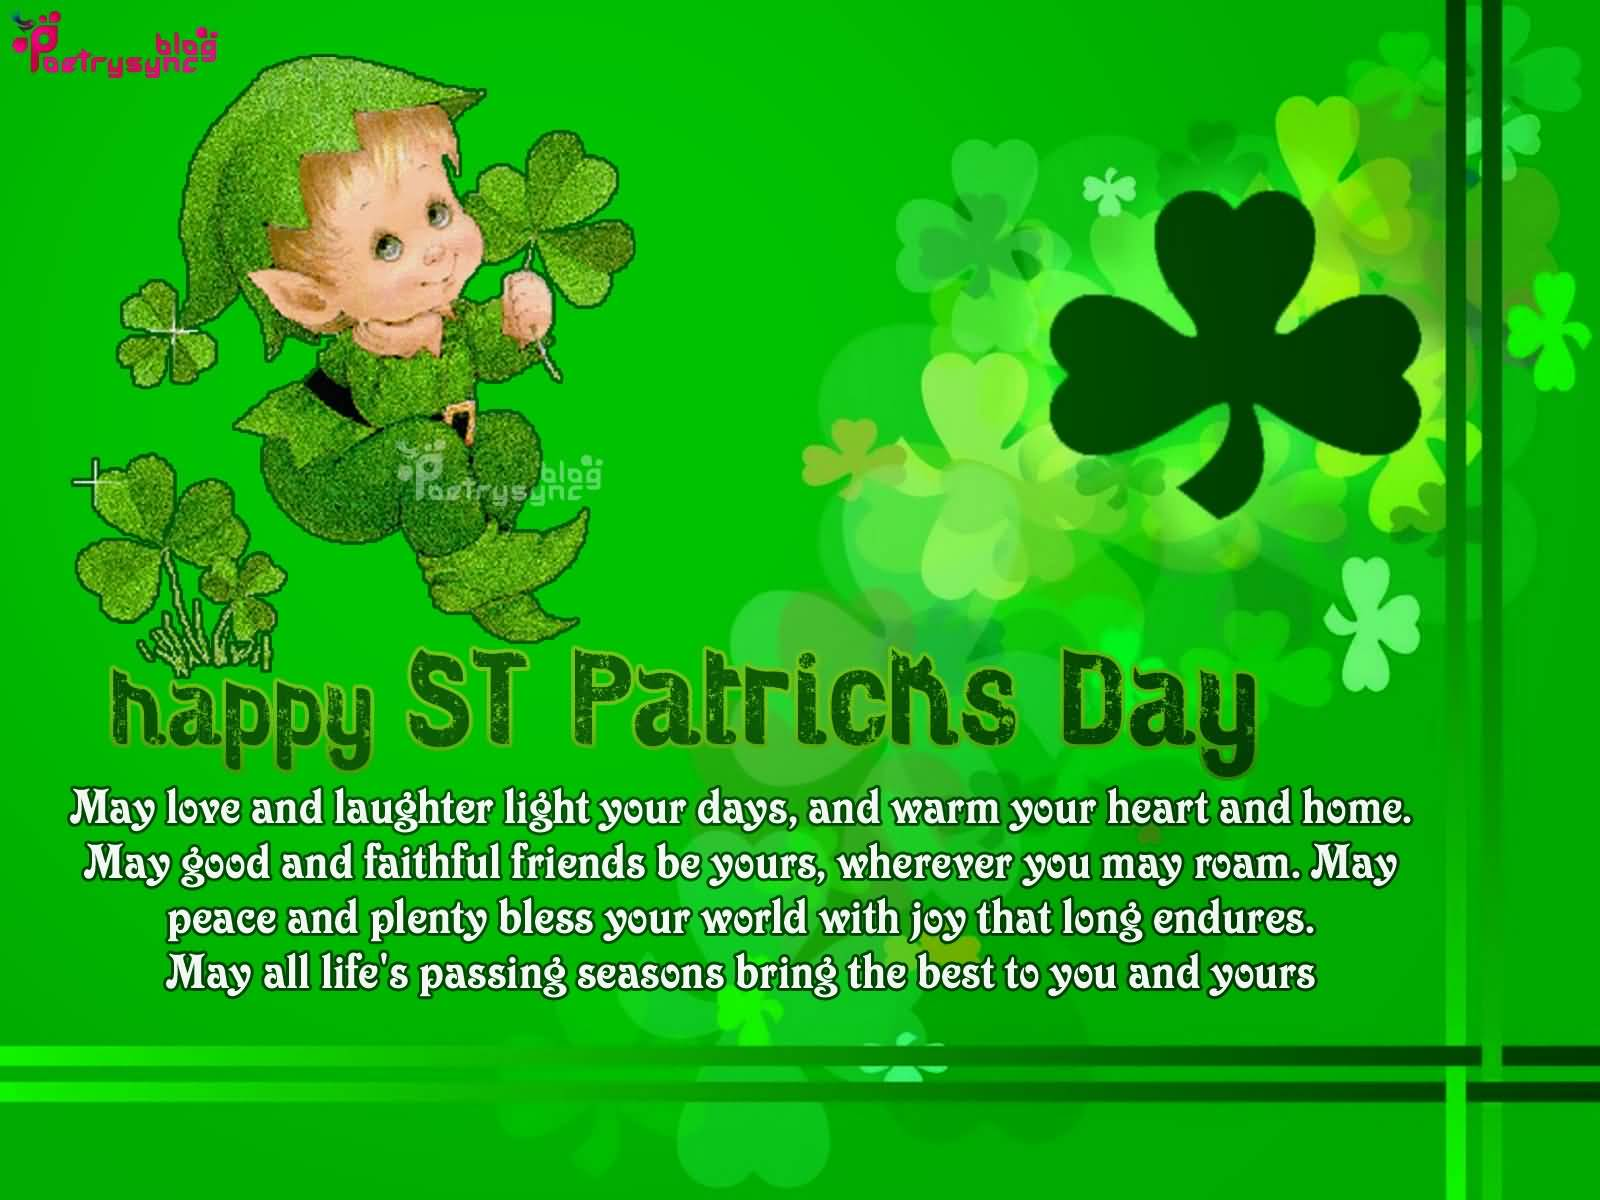 Happy Saint Patrick's Day Cute Kid With Clover Leafs